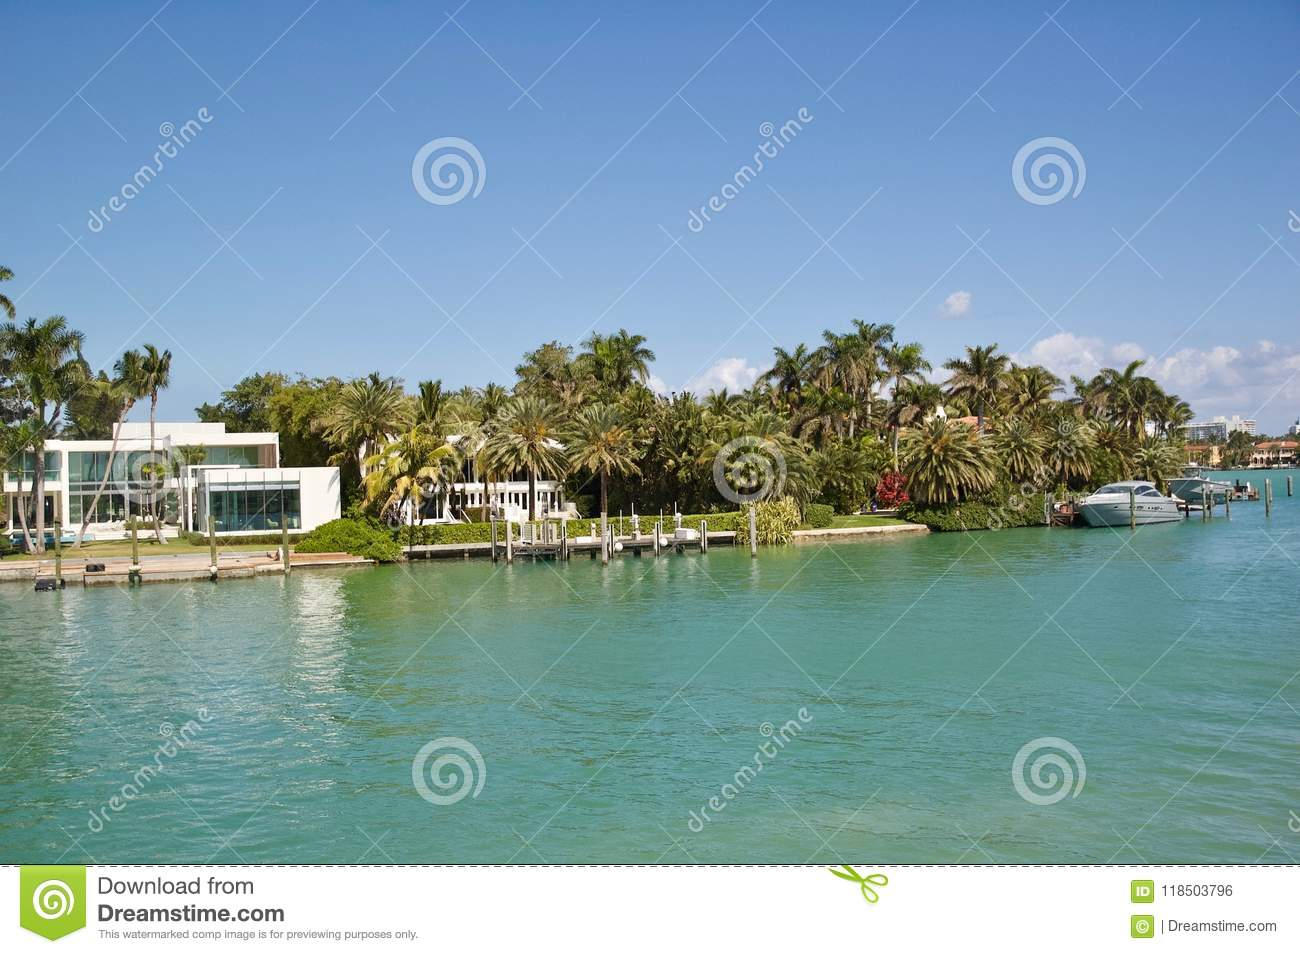 Views of Luxury Real Estate in Miami, Florida